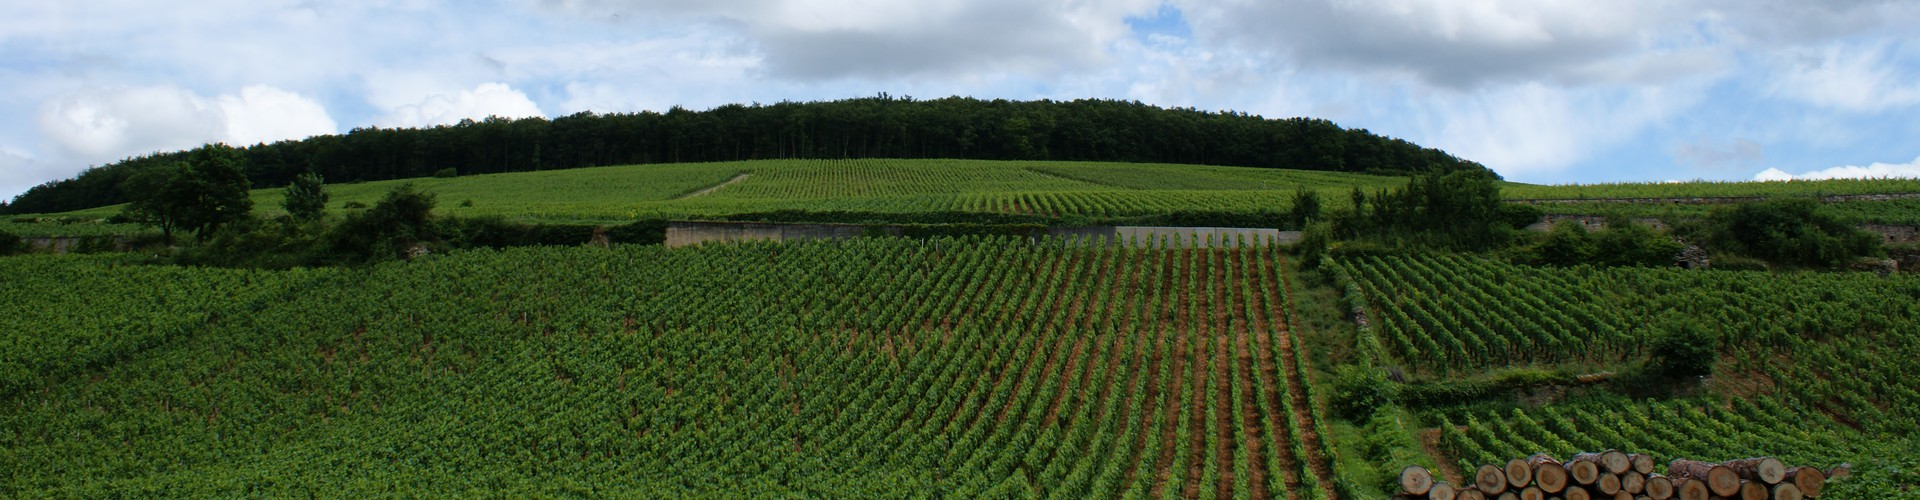 Vineyards in Beaune, Burgundy (Credit: Olivier Duquesne via Flickr)